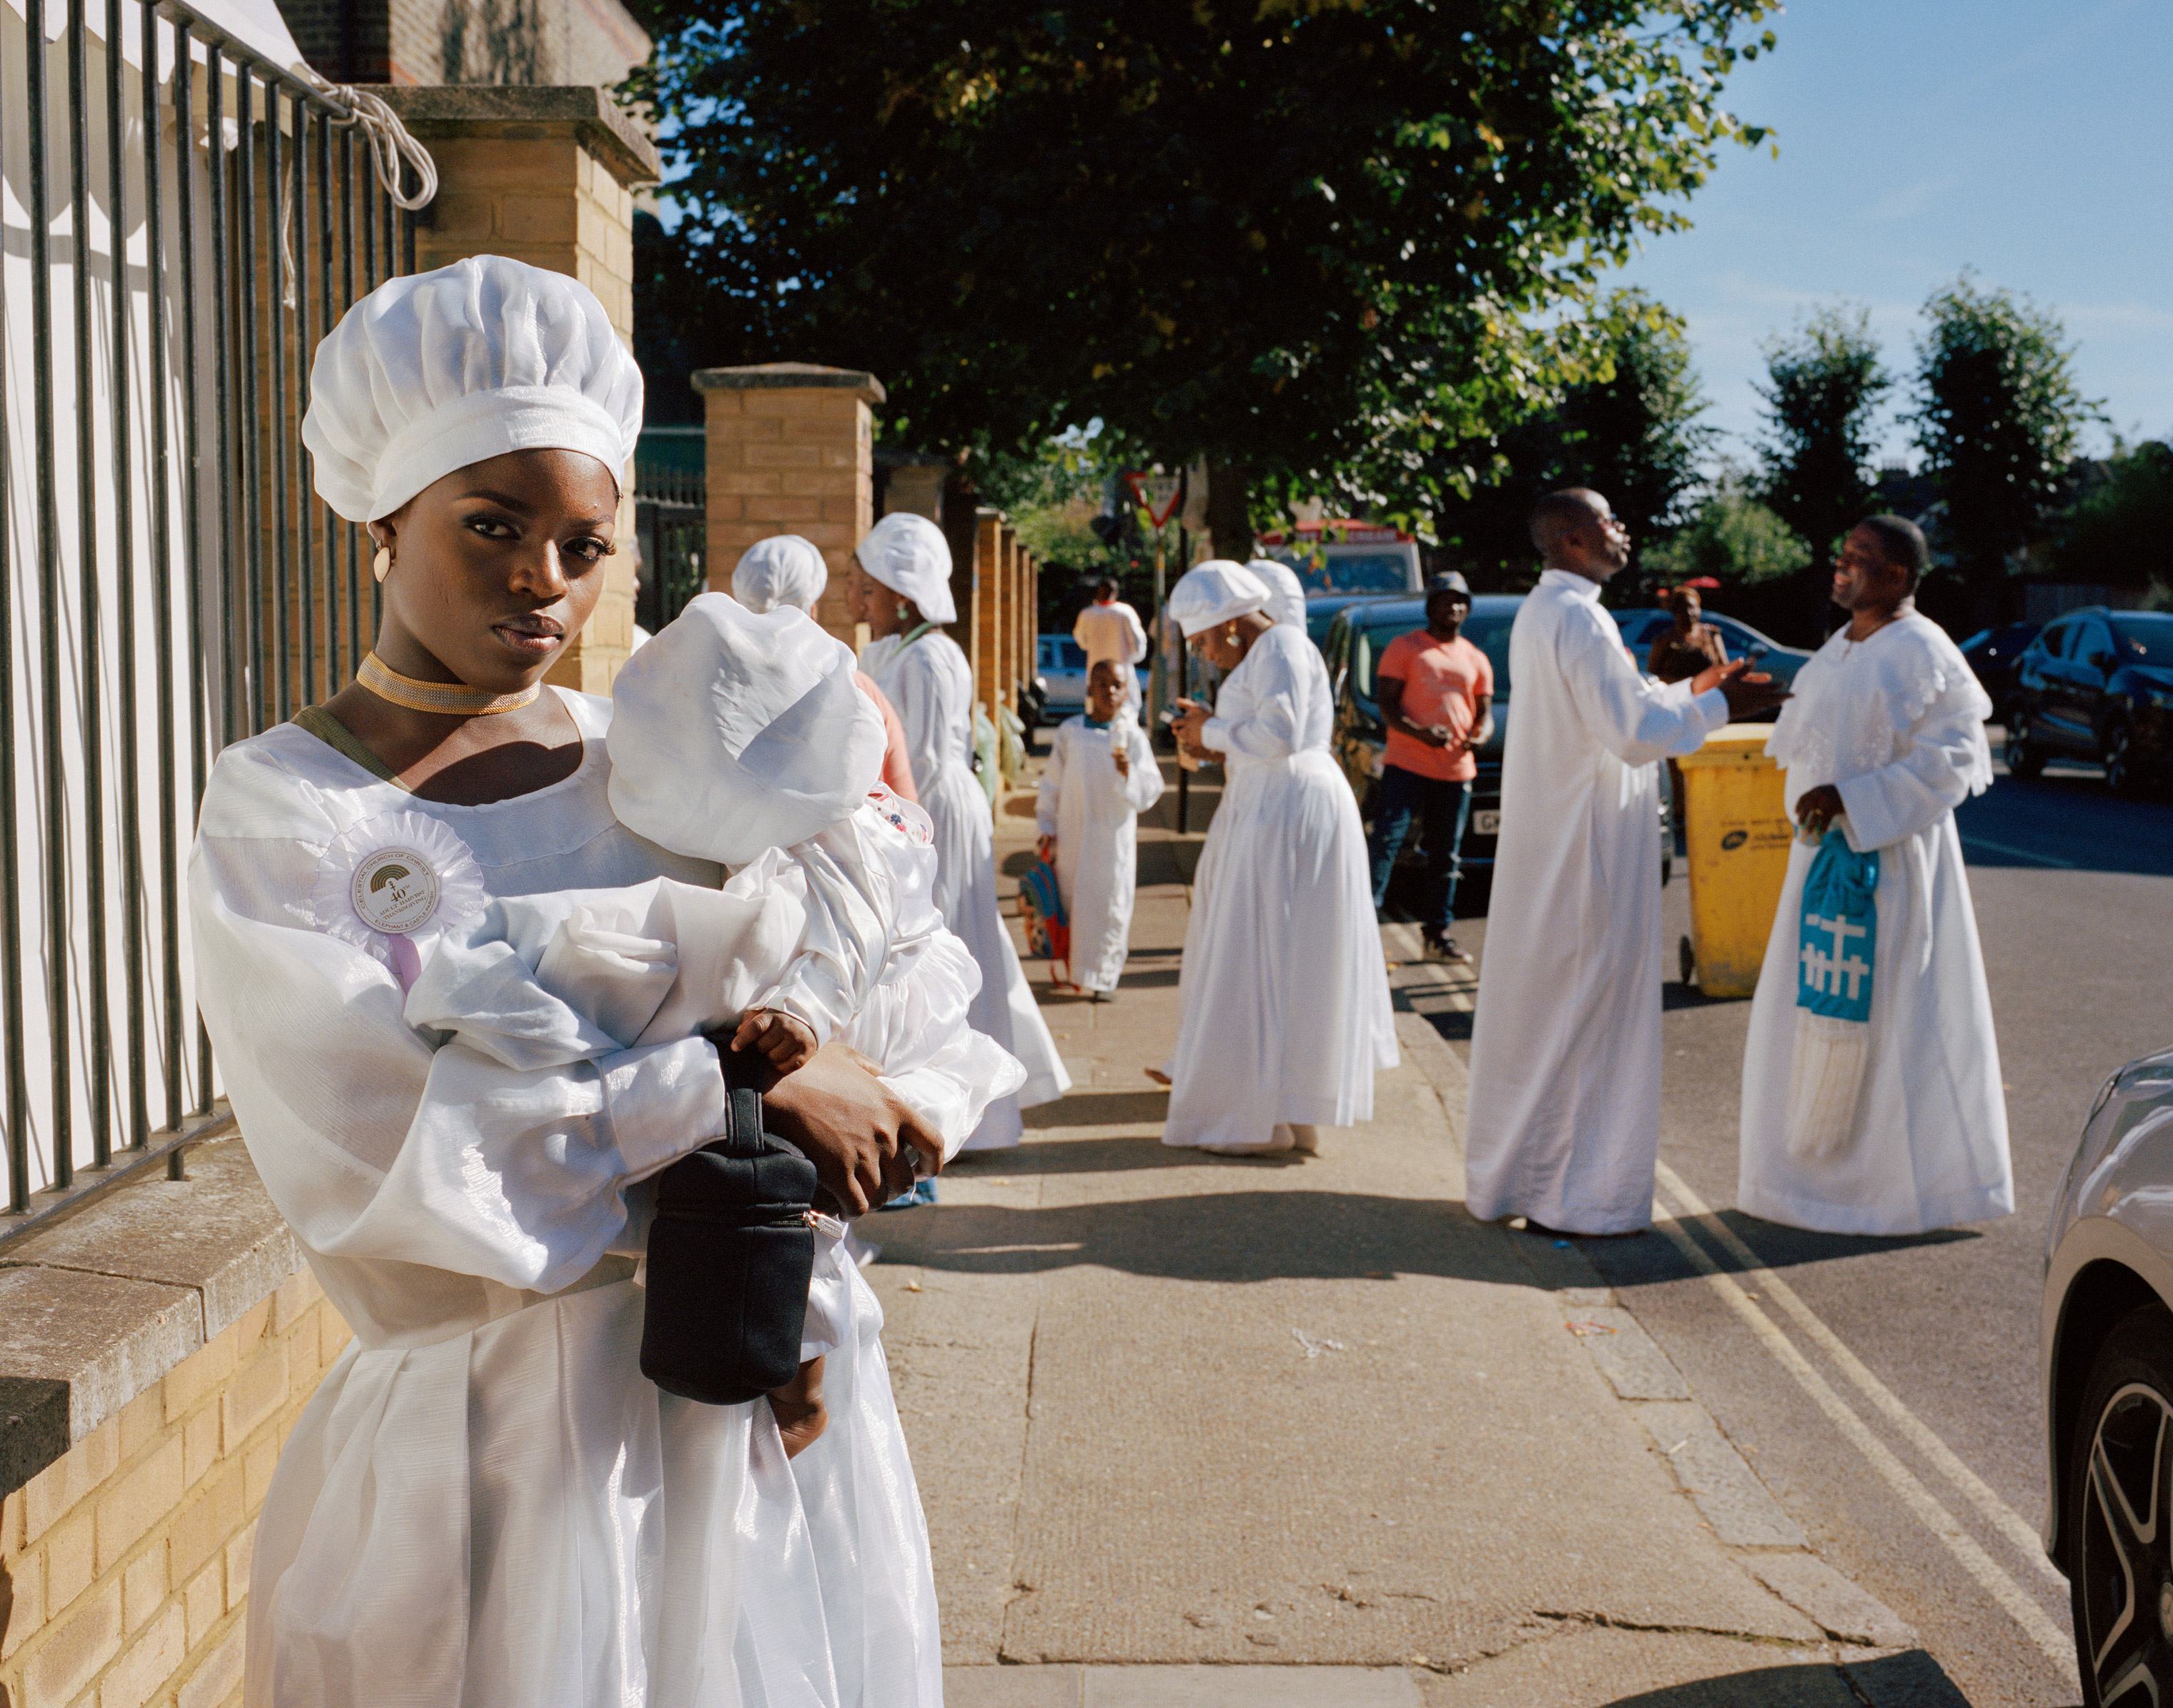 Hannah stands on the street holding her baby cousin whilst members of the Congregation greet each other and chat in the background of the street.